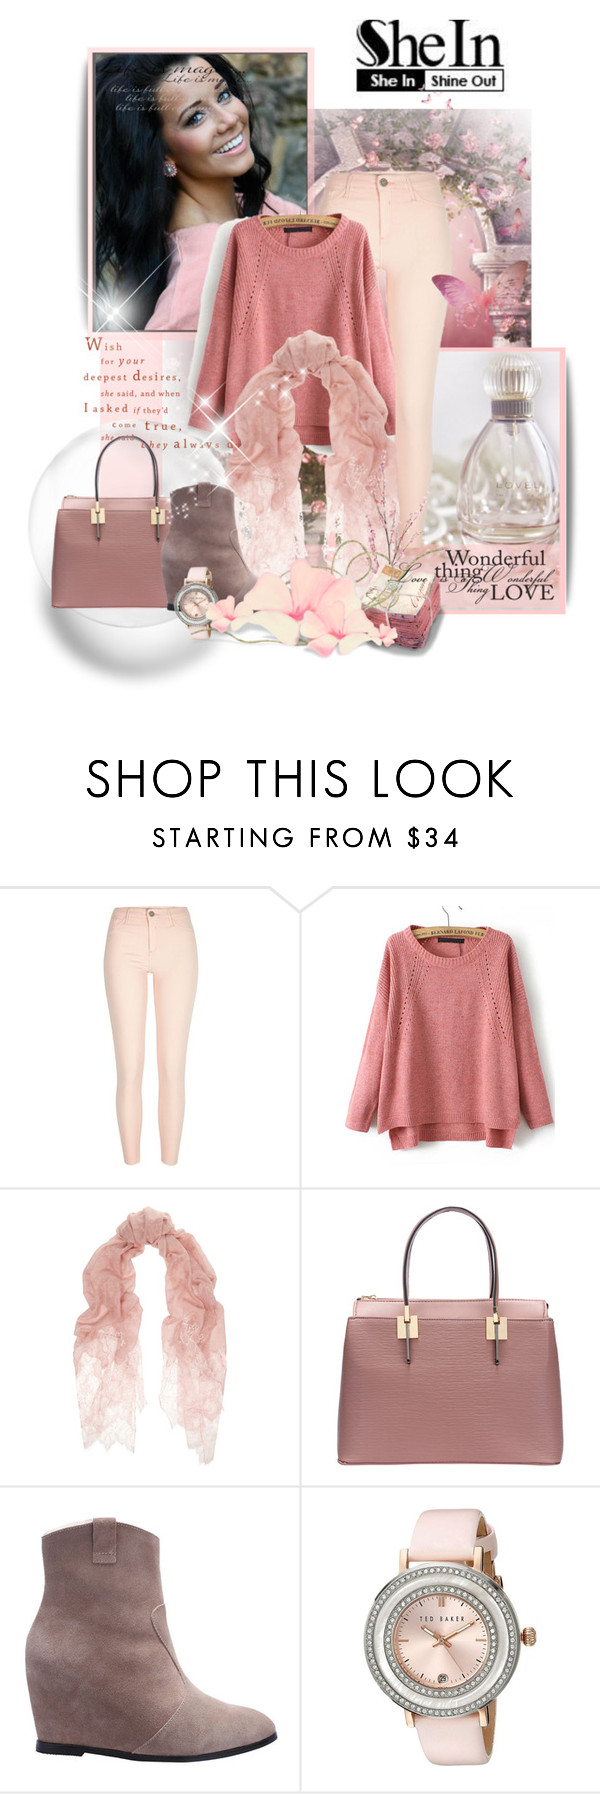 """Sheinside"" by marinadusanic ❤ liked on Polyvore featuring мода, Valentino, Ted Baker, Pier 1 Imports и vintage"